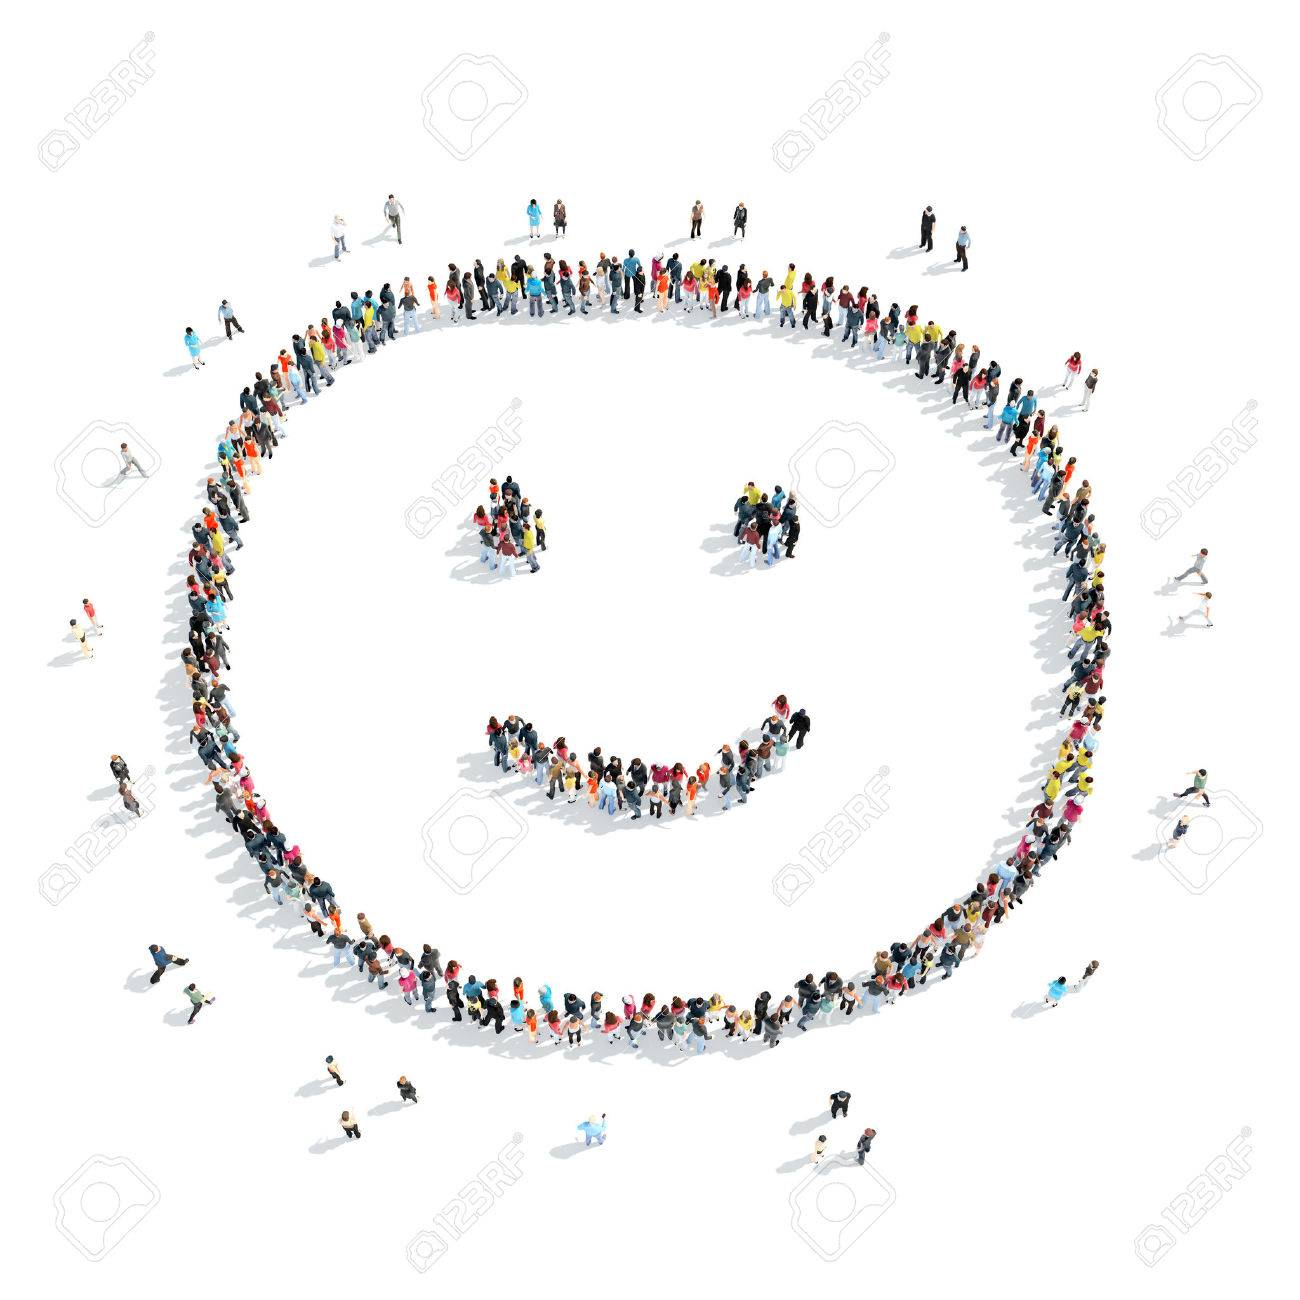 A group of people in the shape of a smile, cartoon, isolated, white background. - 45471933